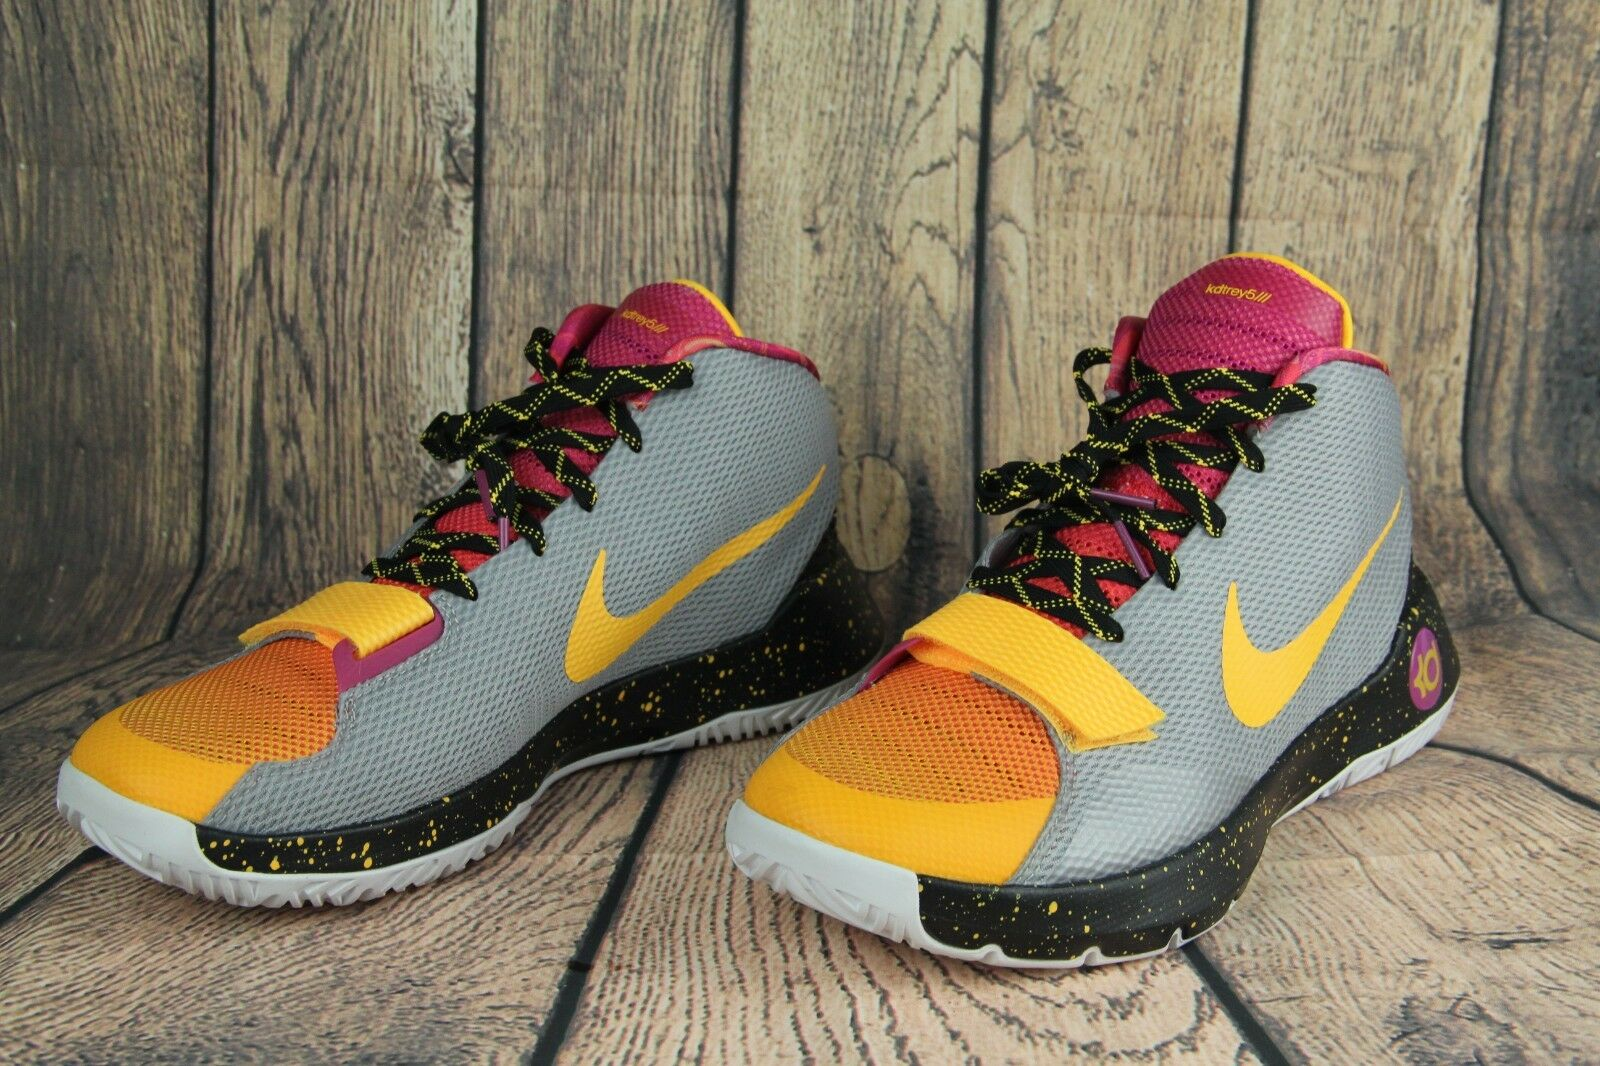 833f734bf6d8 ... Nike KD Trey V 5 III Limited Basketball shoes Multi-color Multi-color  Multi ...